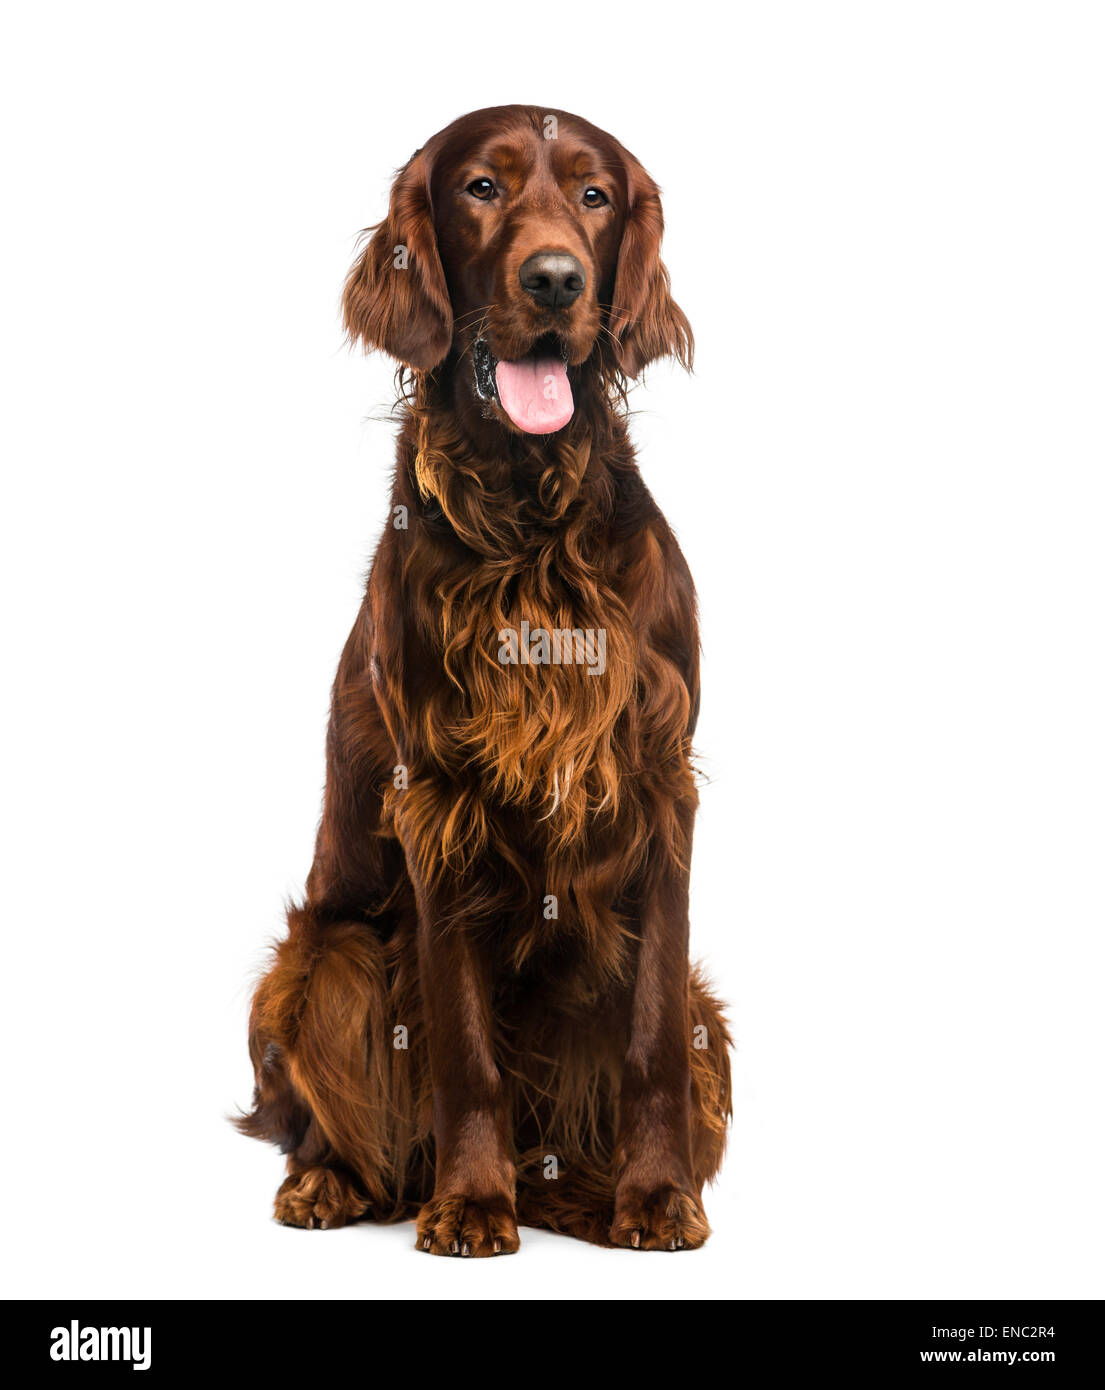 Irish Setter (2 years old) in front of a white background Stock Photo